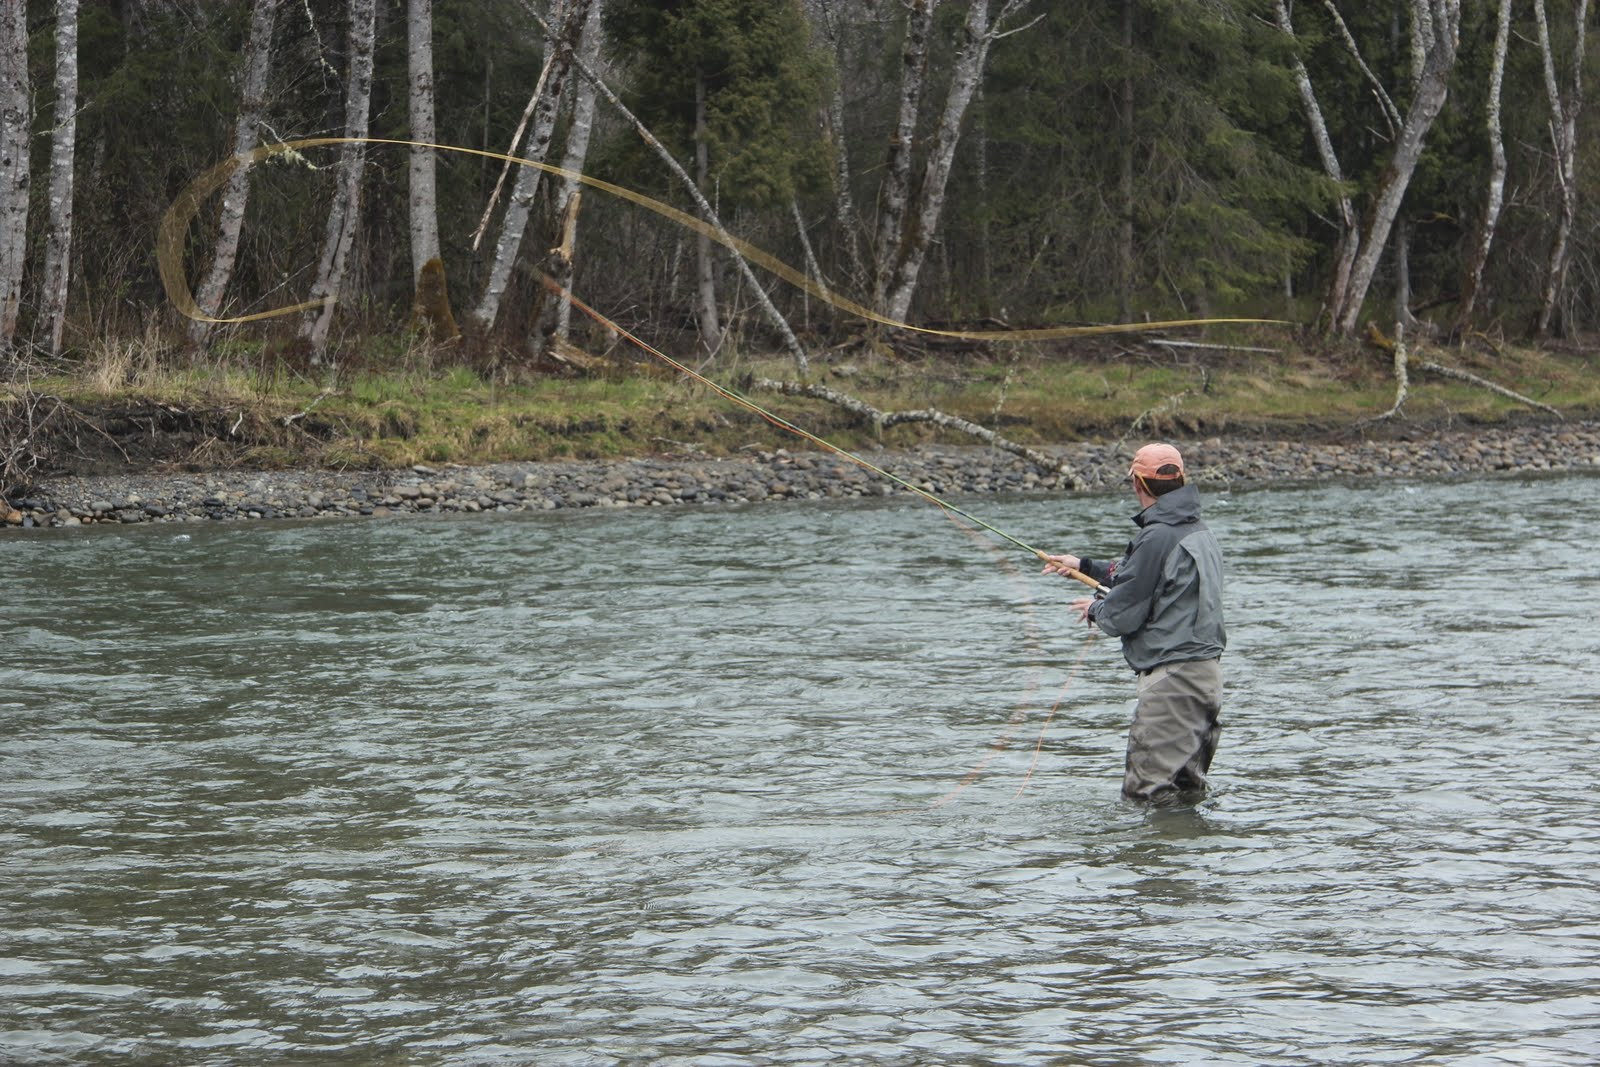 Country pleasures fly fishing spey casting for Fly fishing casting